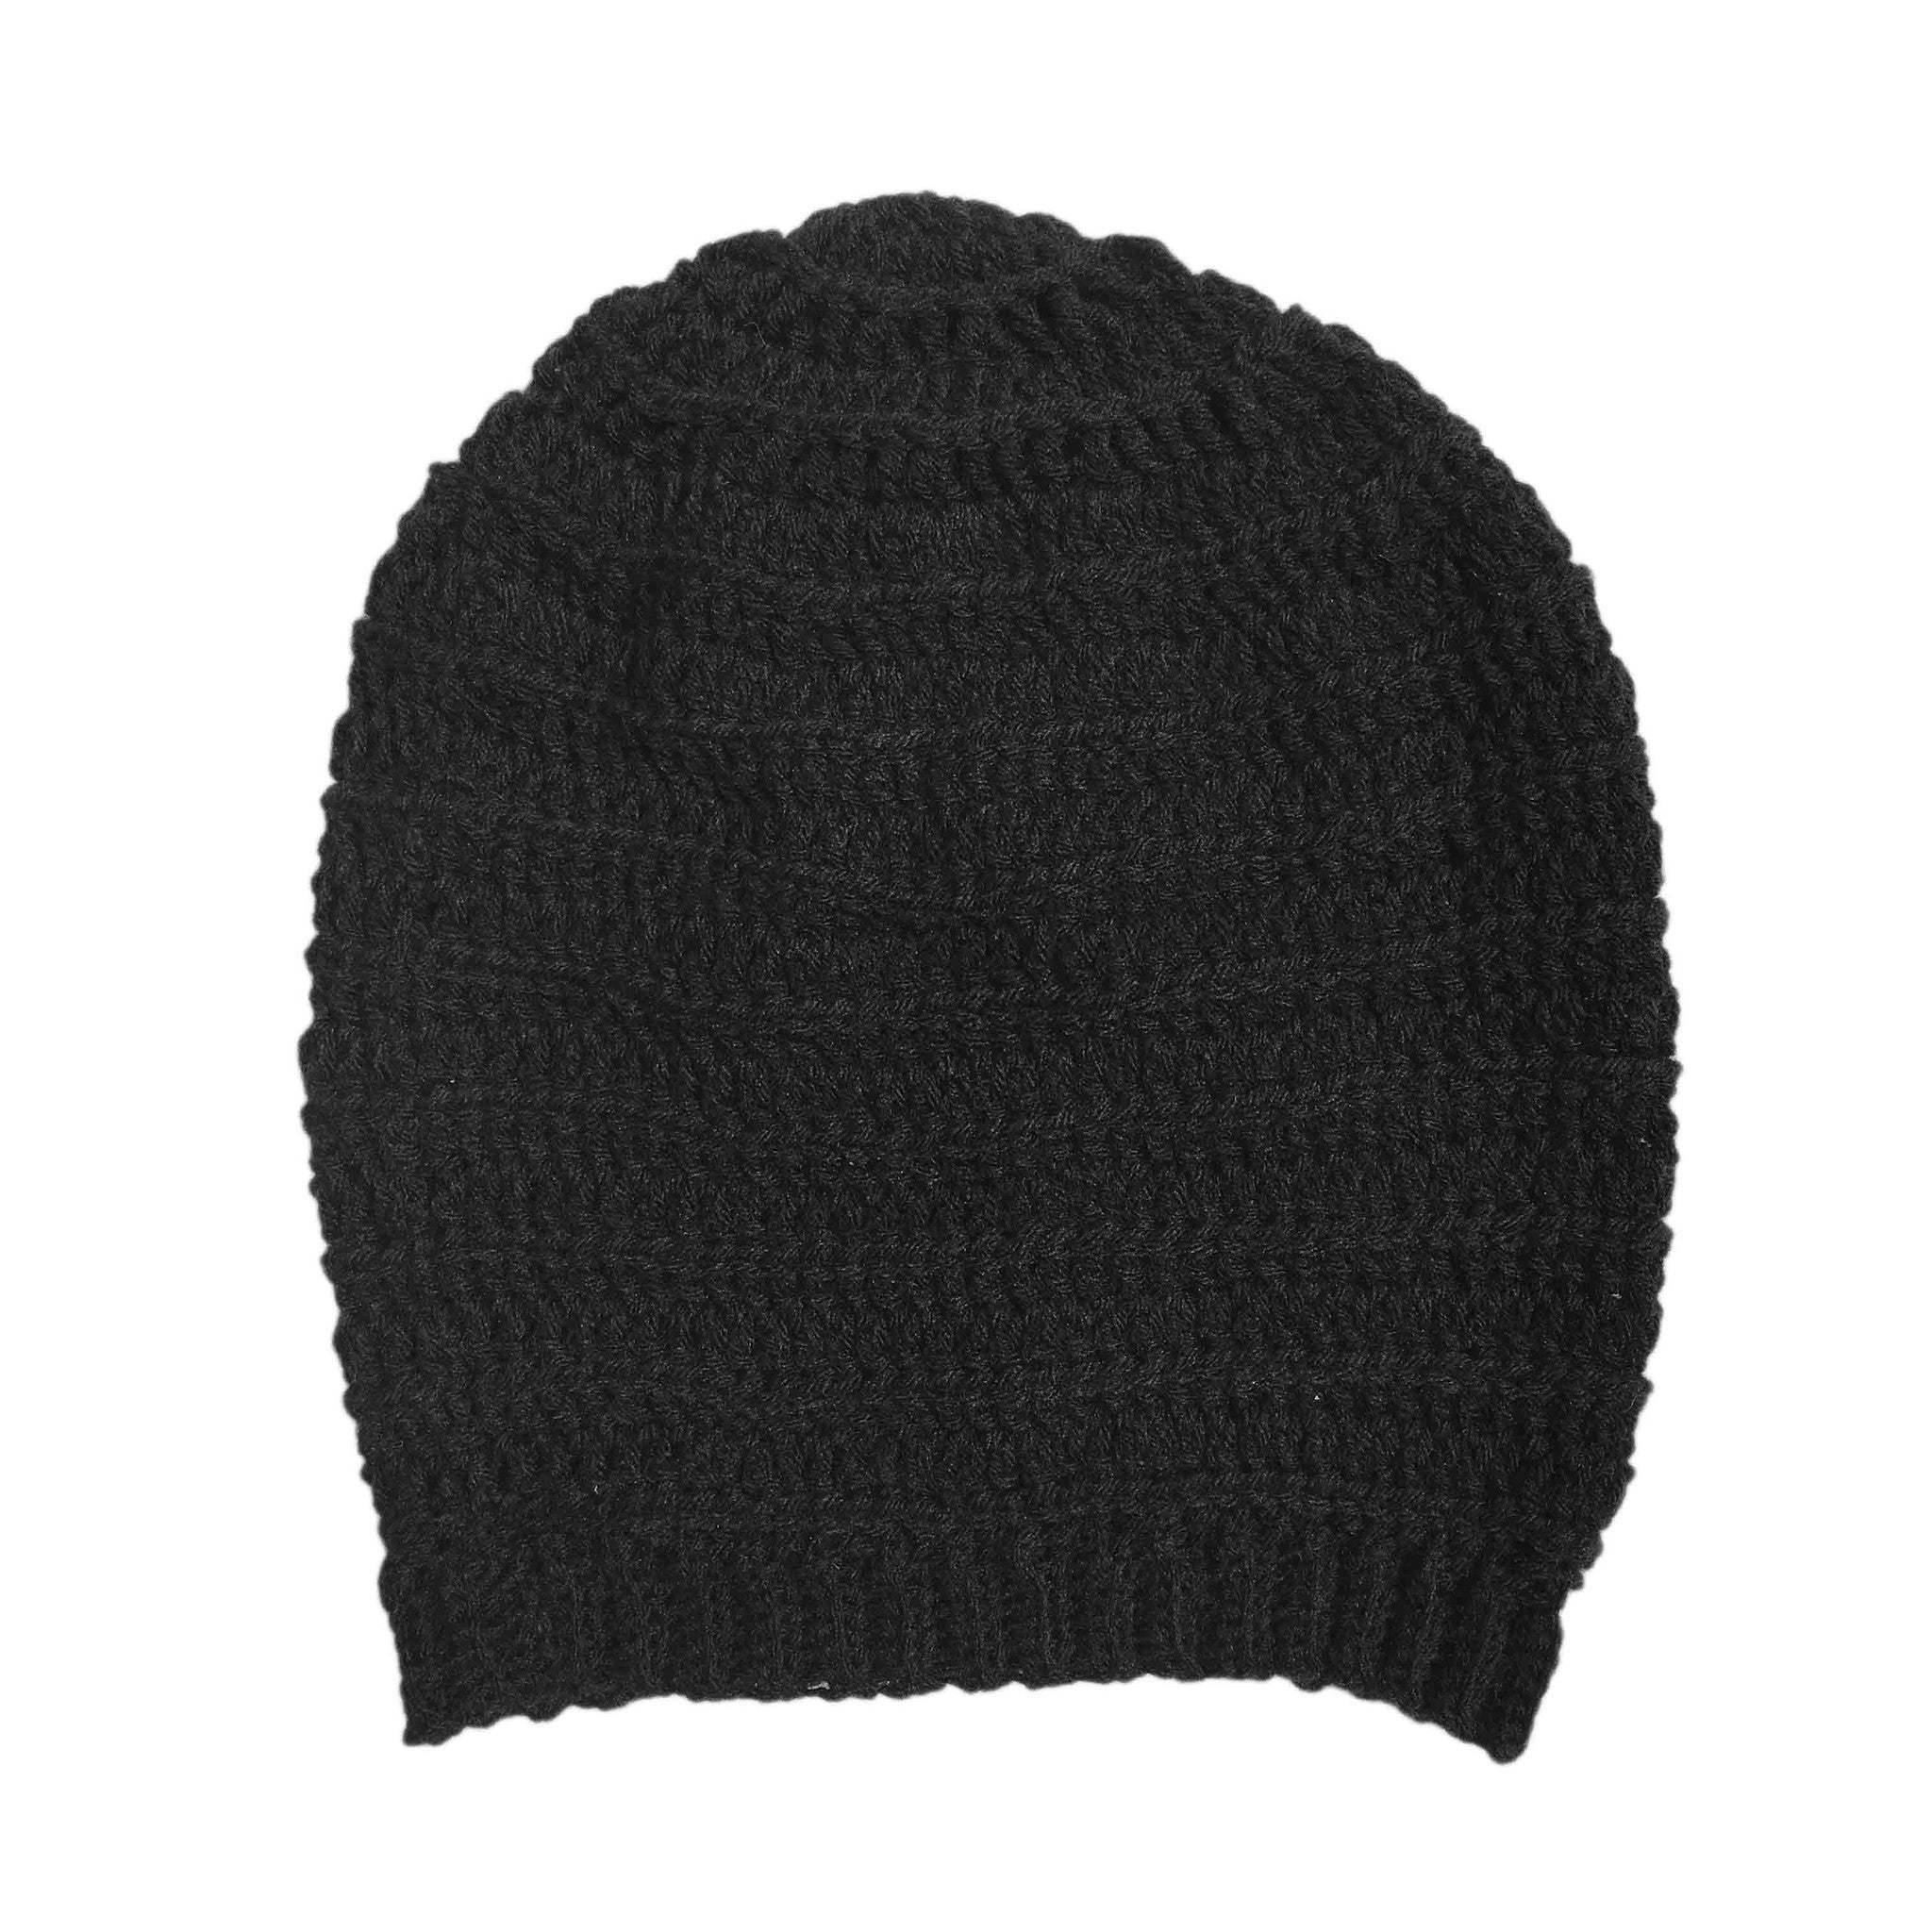 Dark Dreams Slouch Beanie Hat - Crochita - 4